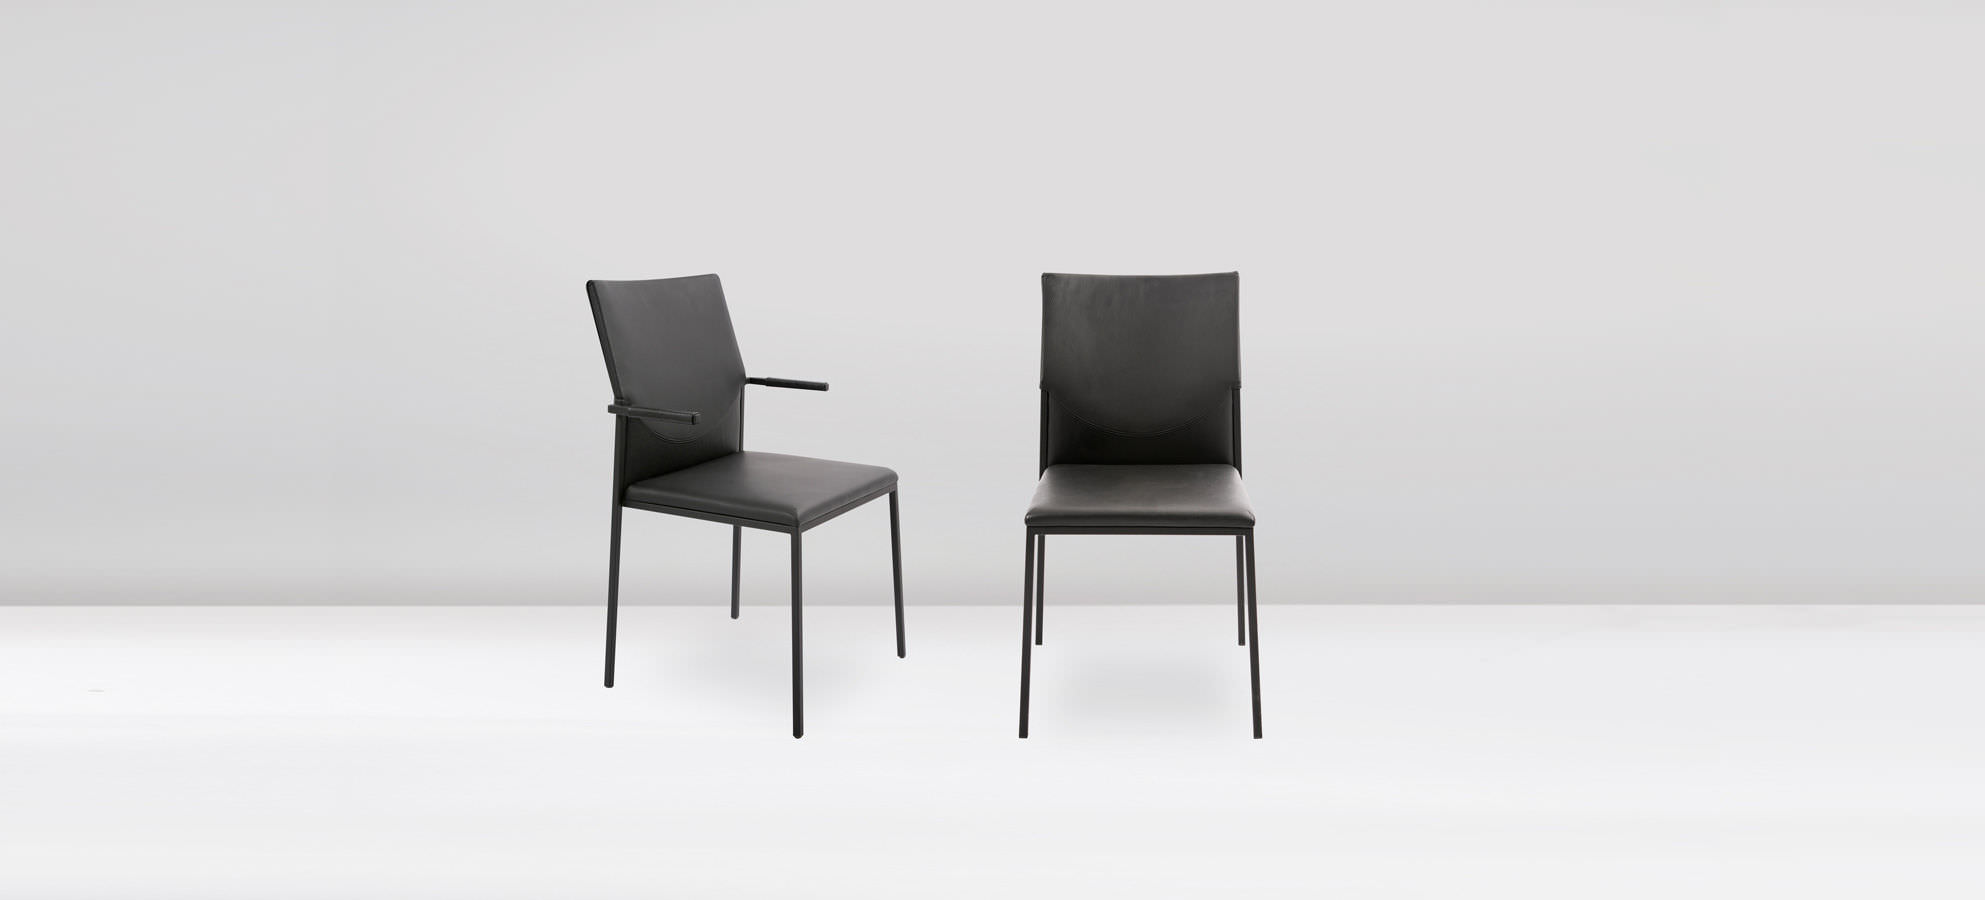 Kff Mexico Contemporary Chair Upholstered Stackable With Armrests